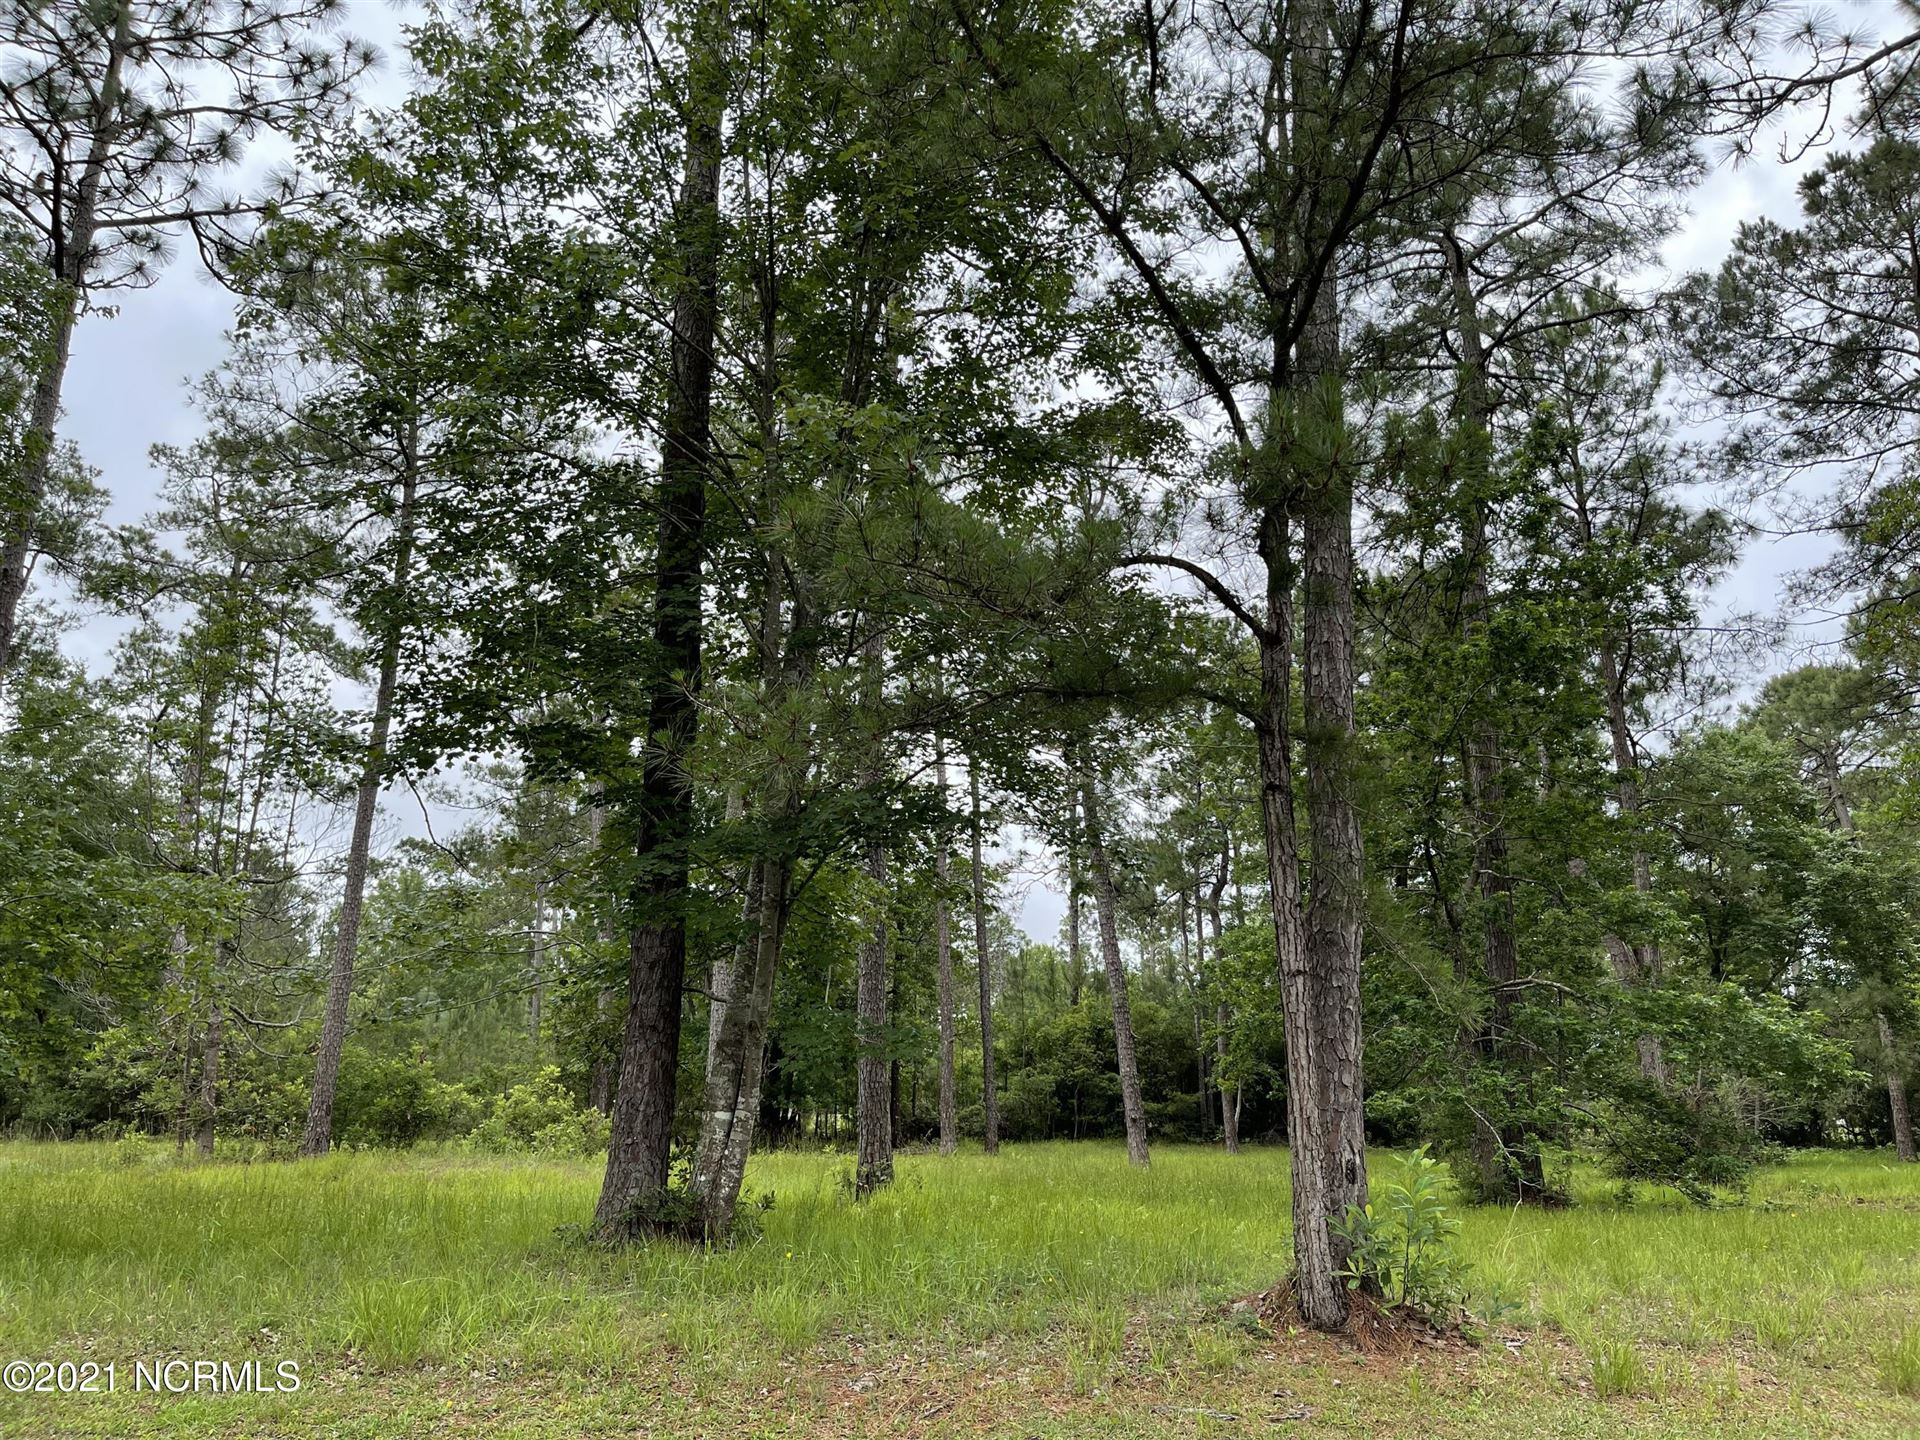 Photo of Lot 9 Bay Hill Court, Shallotte, NC 28470 (MLS # 100275330)